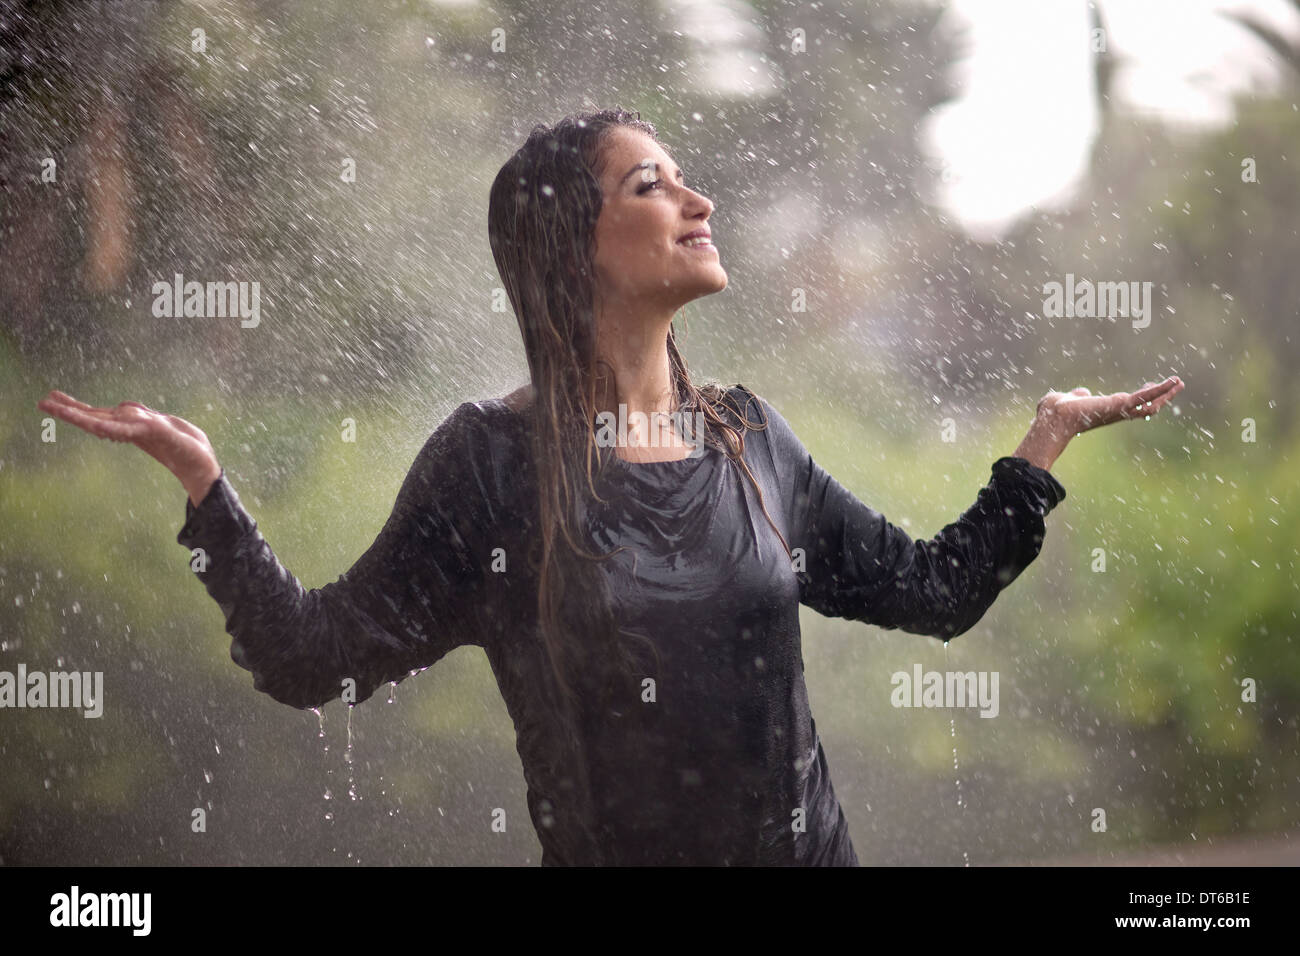 pictures How to get drenched in the rain without falling sick